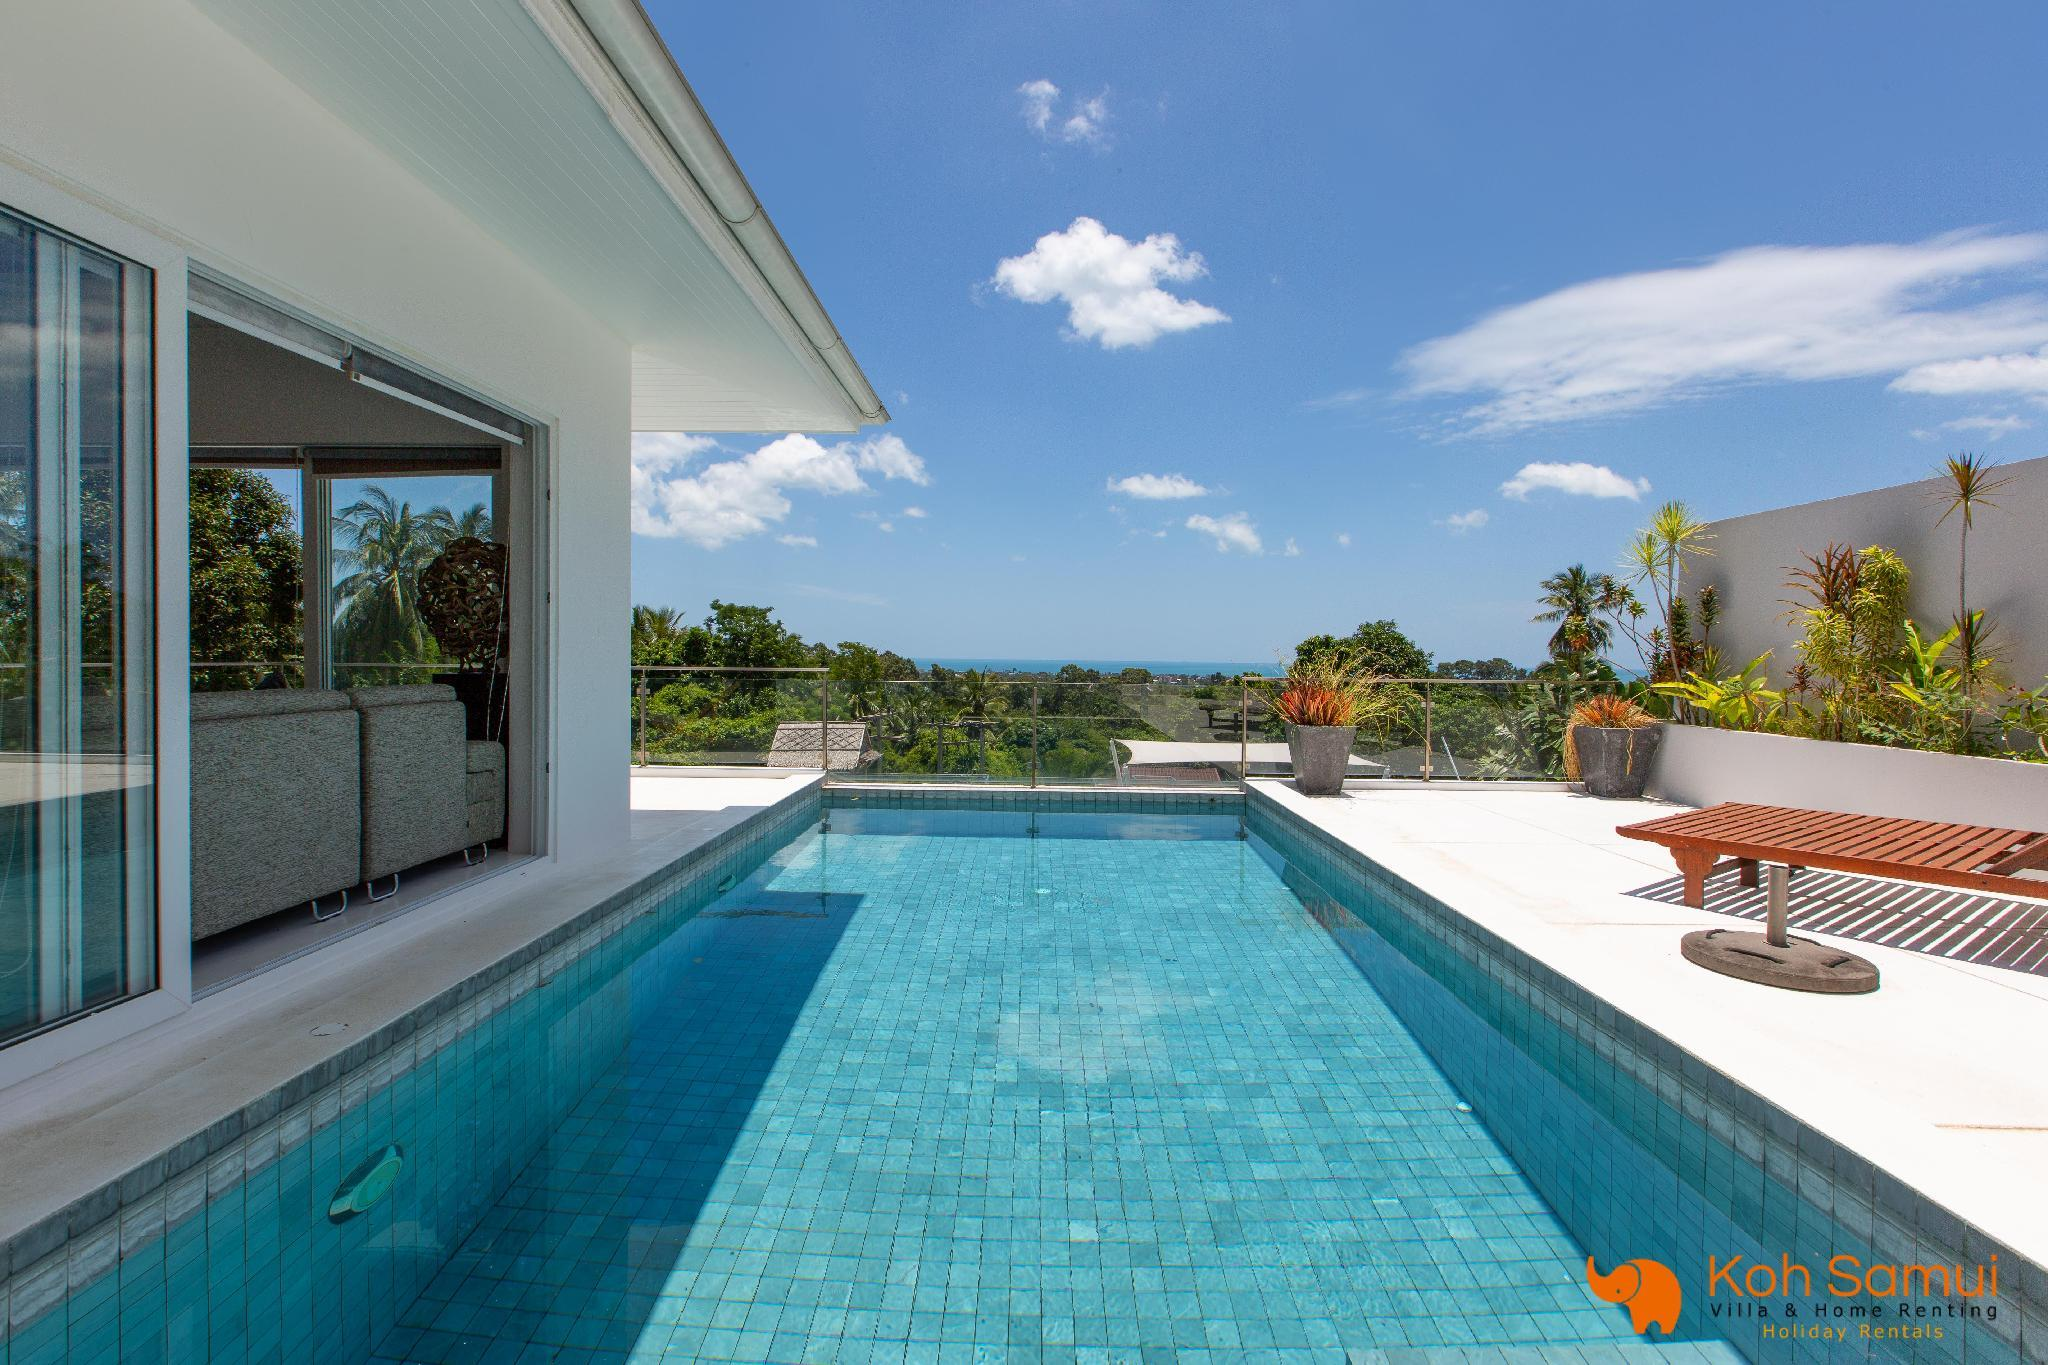 Modern And Spacious 4 Bedroom Pool Villa And Seaview